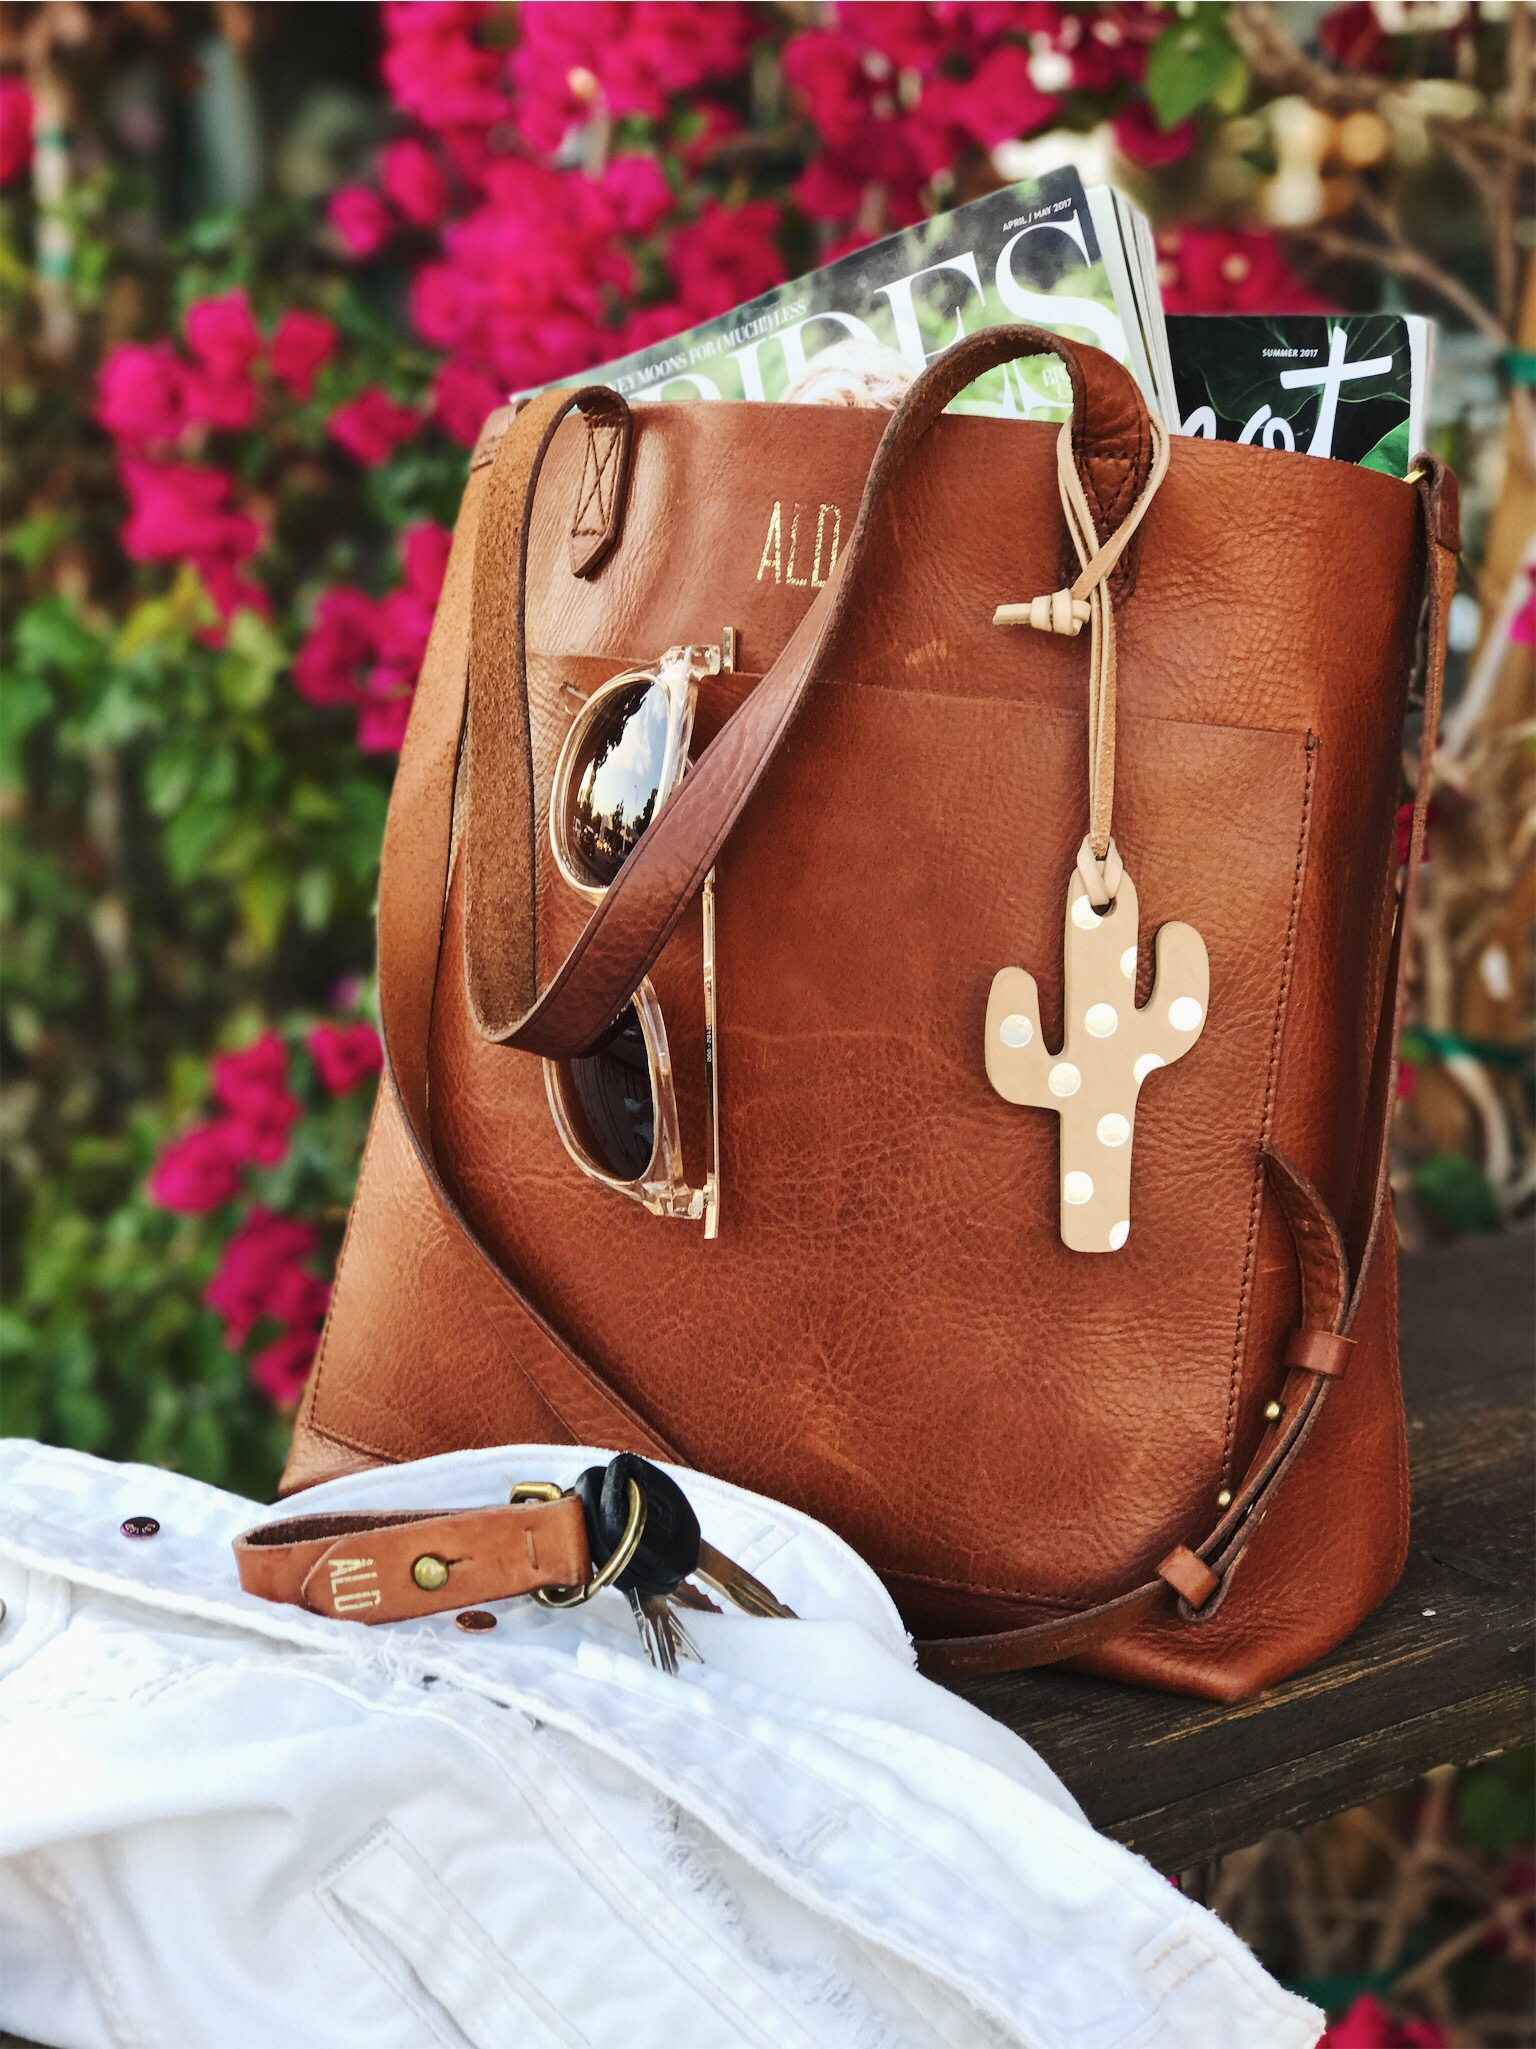 Madewell: The Tote Every Bride Needs – My Something Good